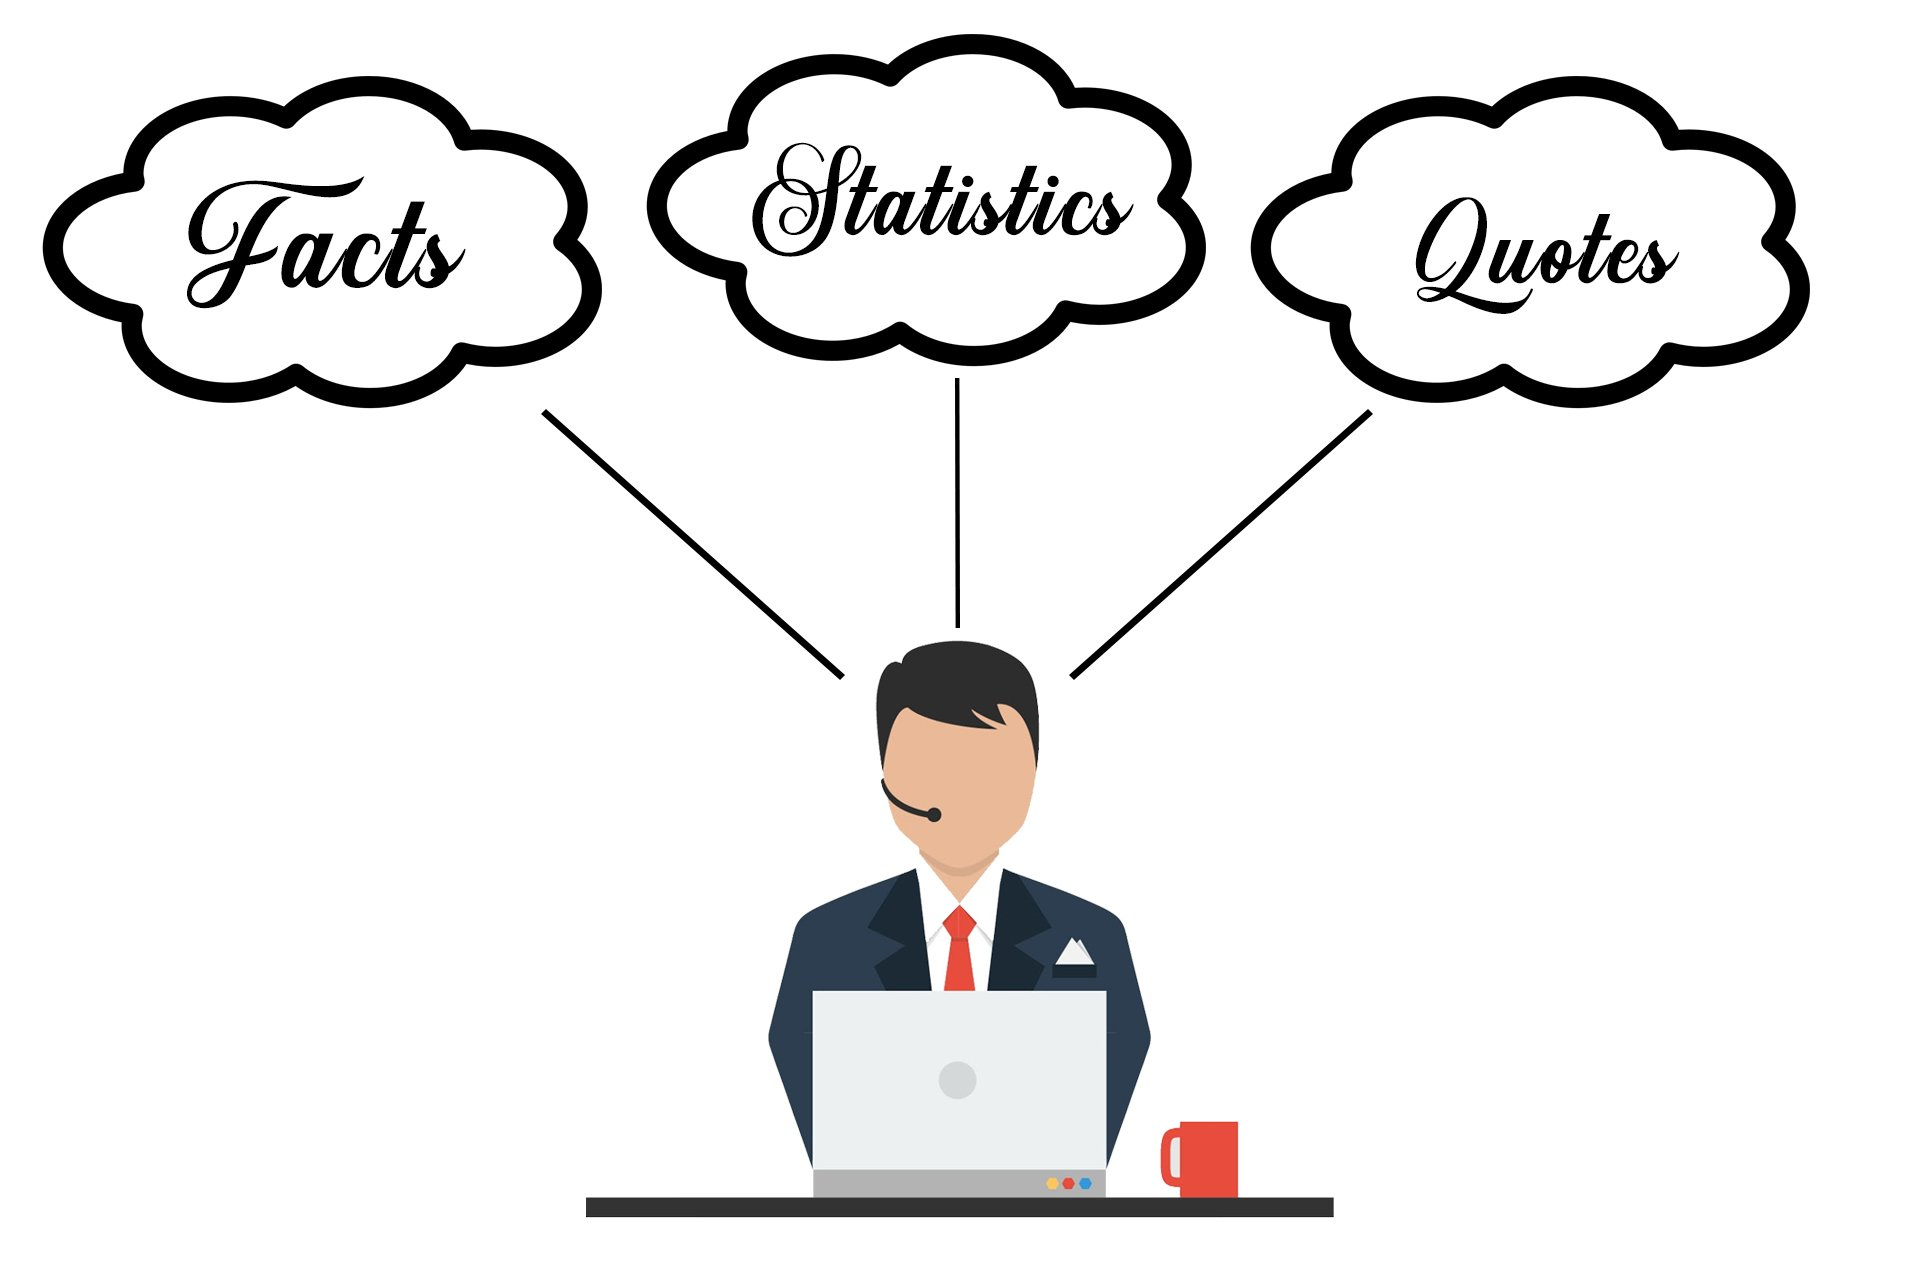 top-picks-for-the-best-customer-service-facts-statistics-an-quotes